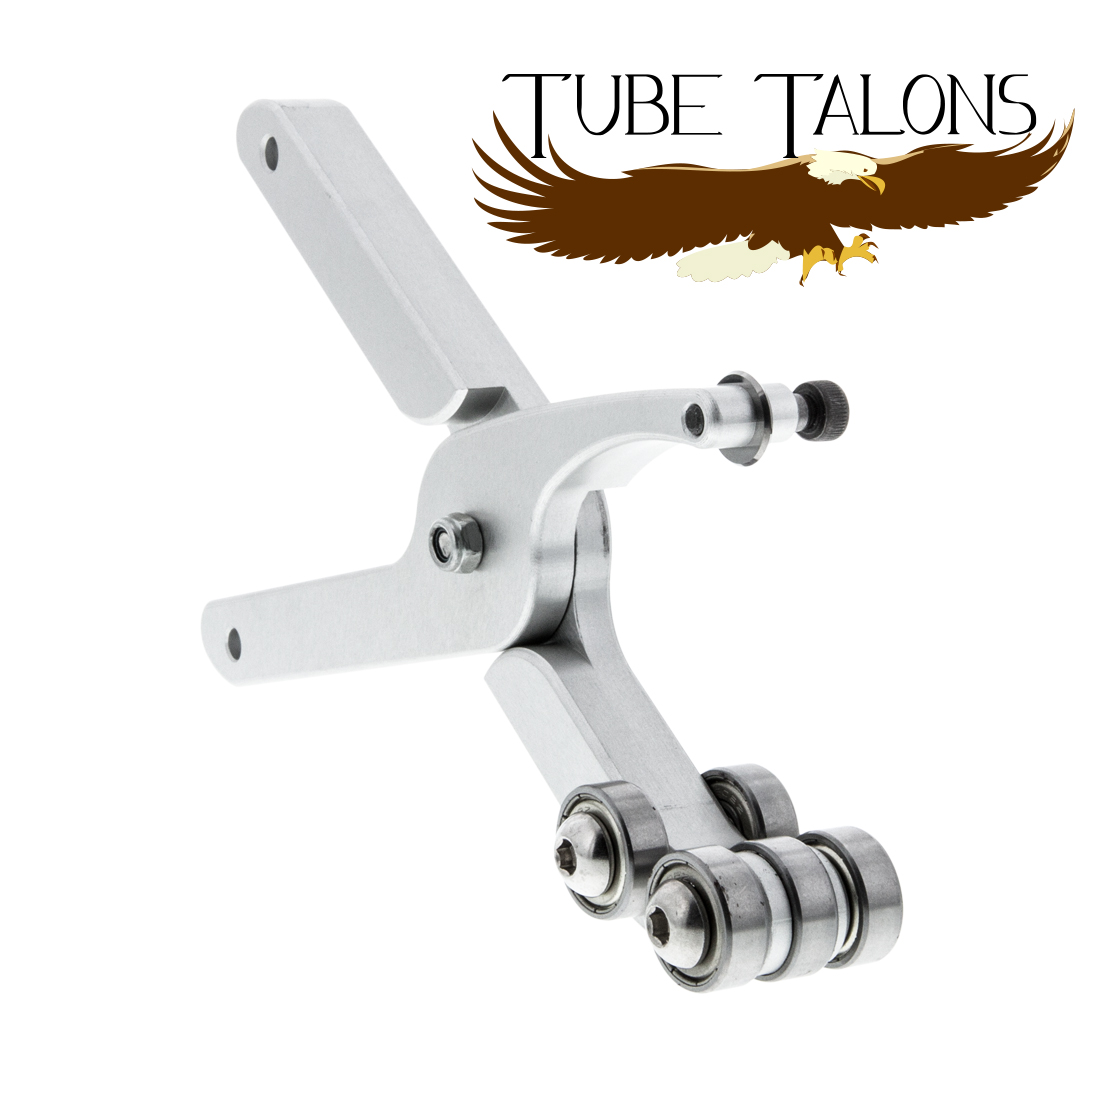 Tube Talons - Tube Scoring Tool